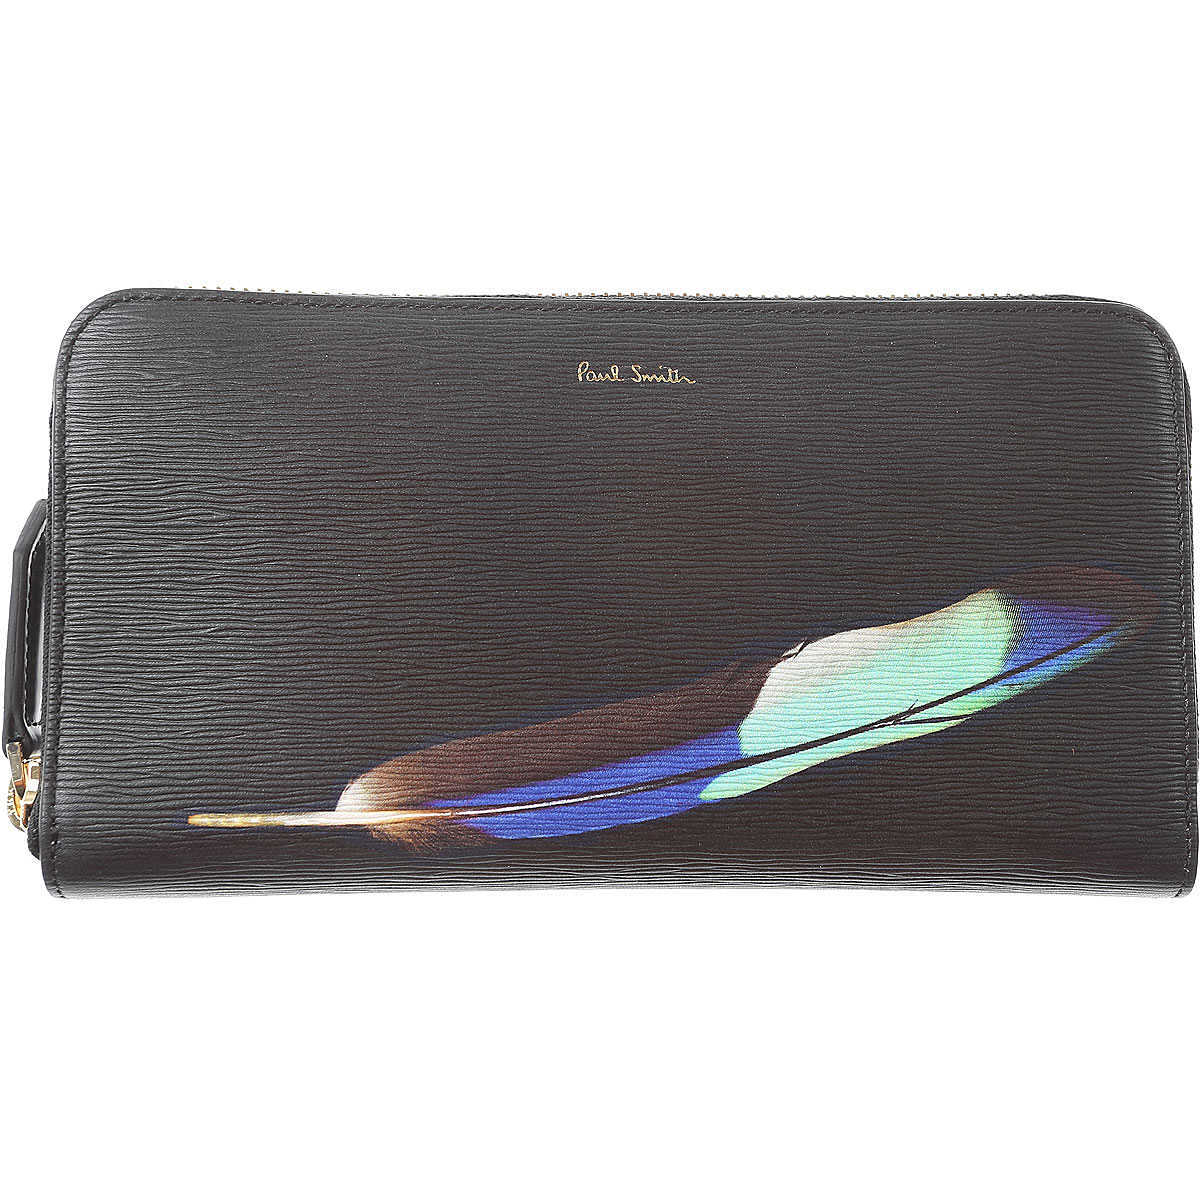 Paul Smith Wallet for Men On Sale Black DK - GOOFASH - Mens WALLETS